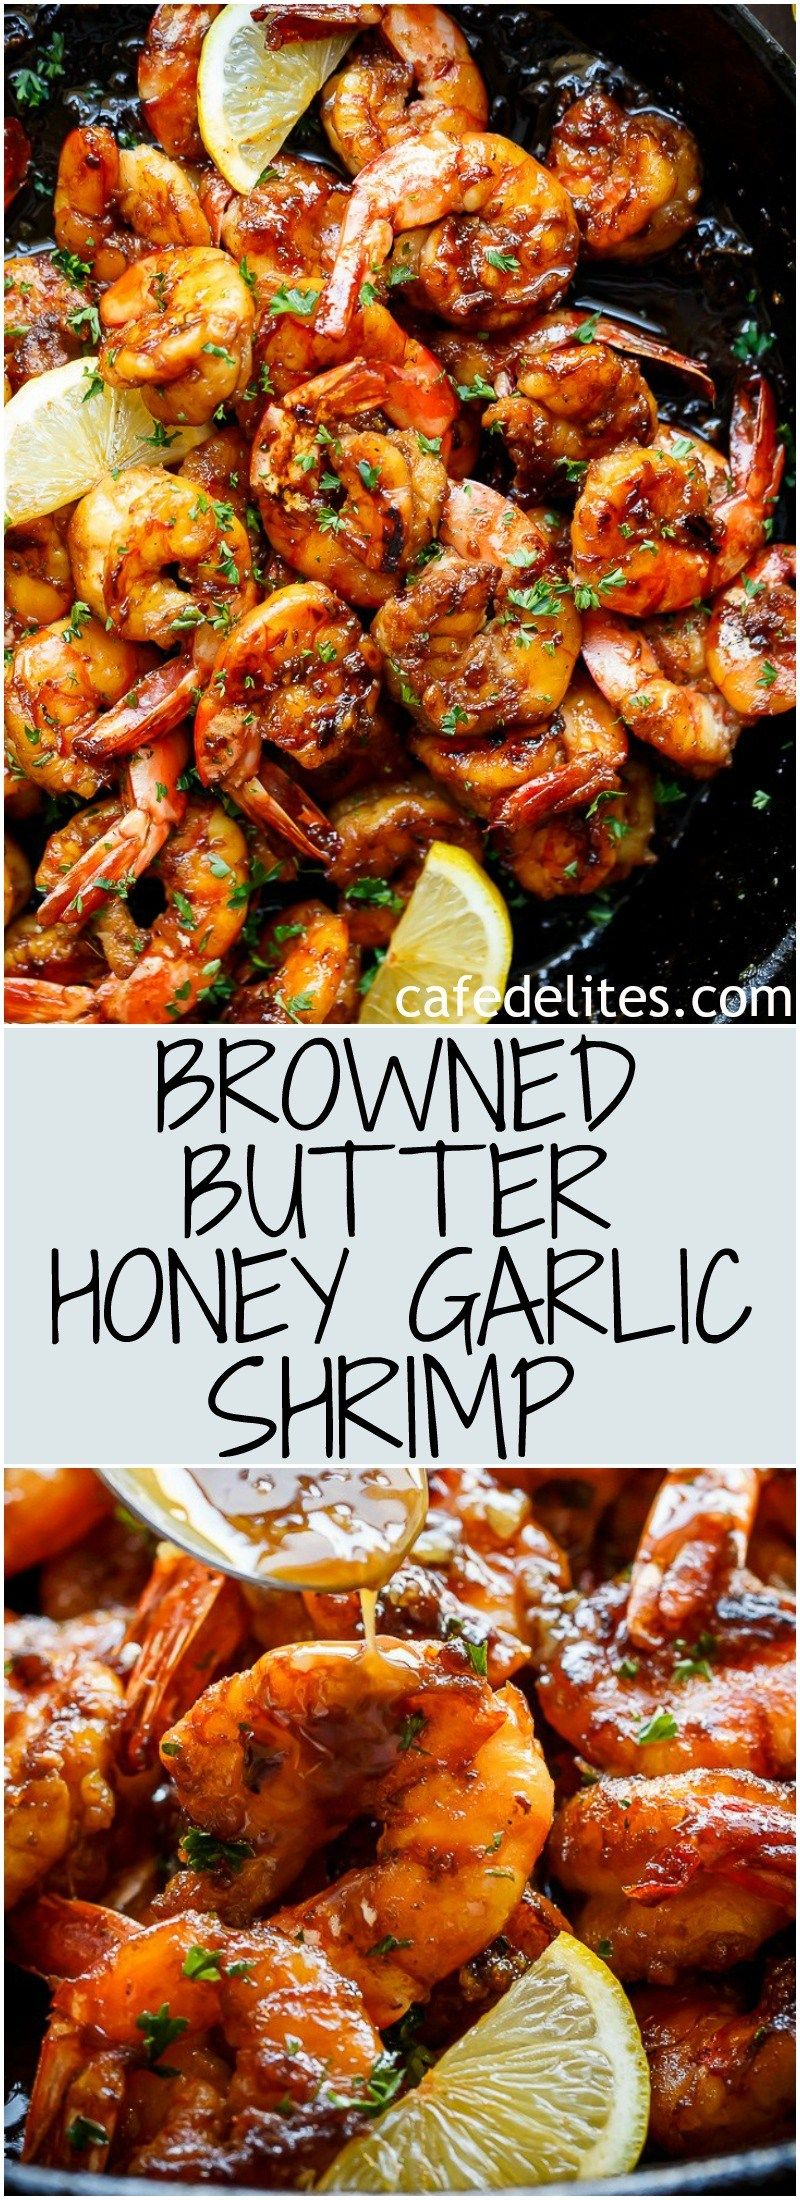 Photo of Browned Butter Honey Garlic Shrimp feels like a gourmet shrimp meal, with half o…